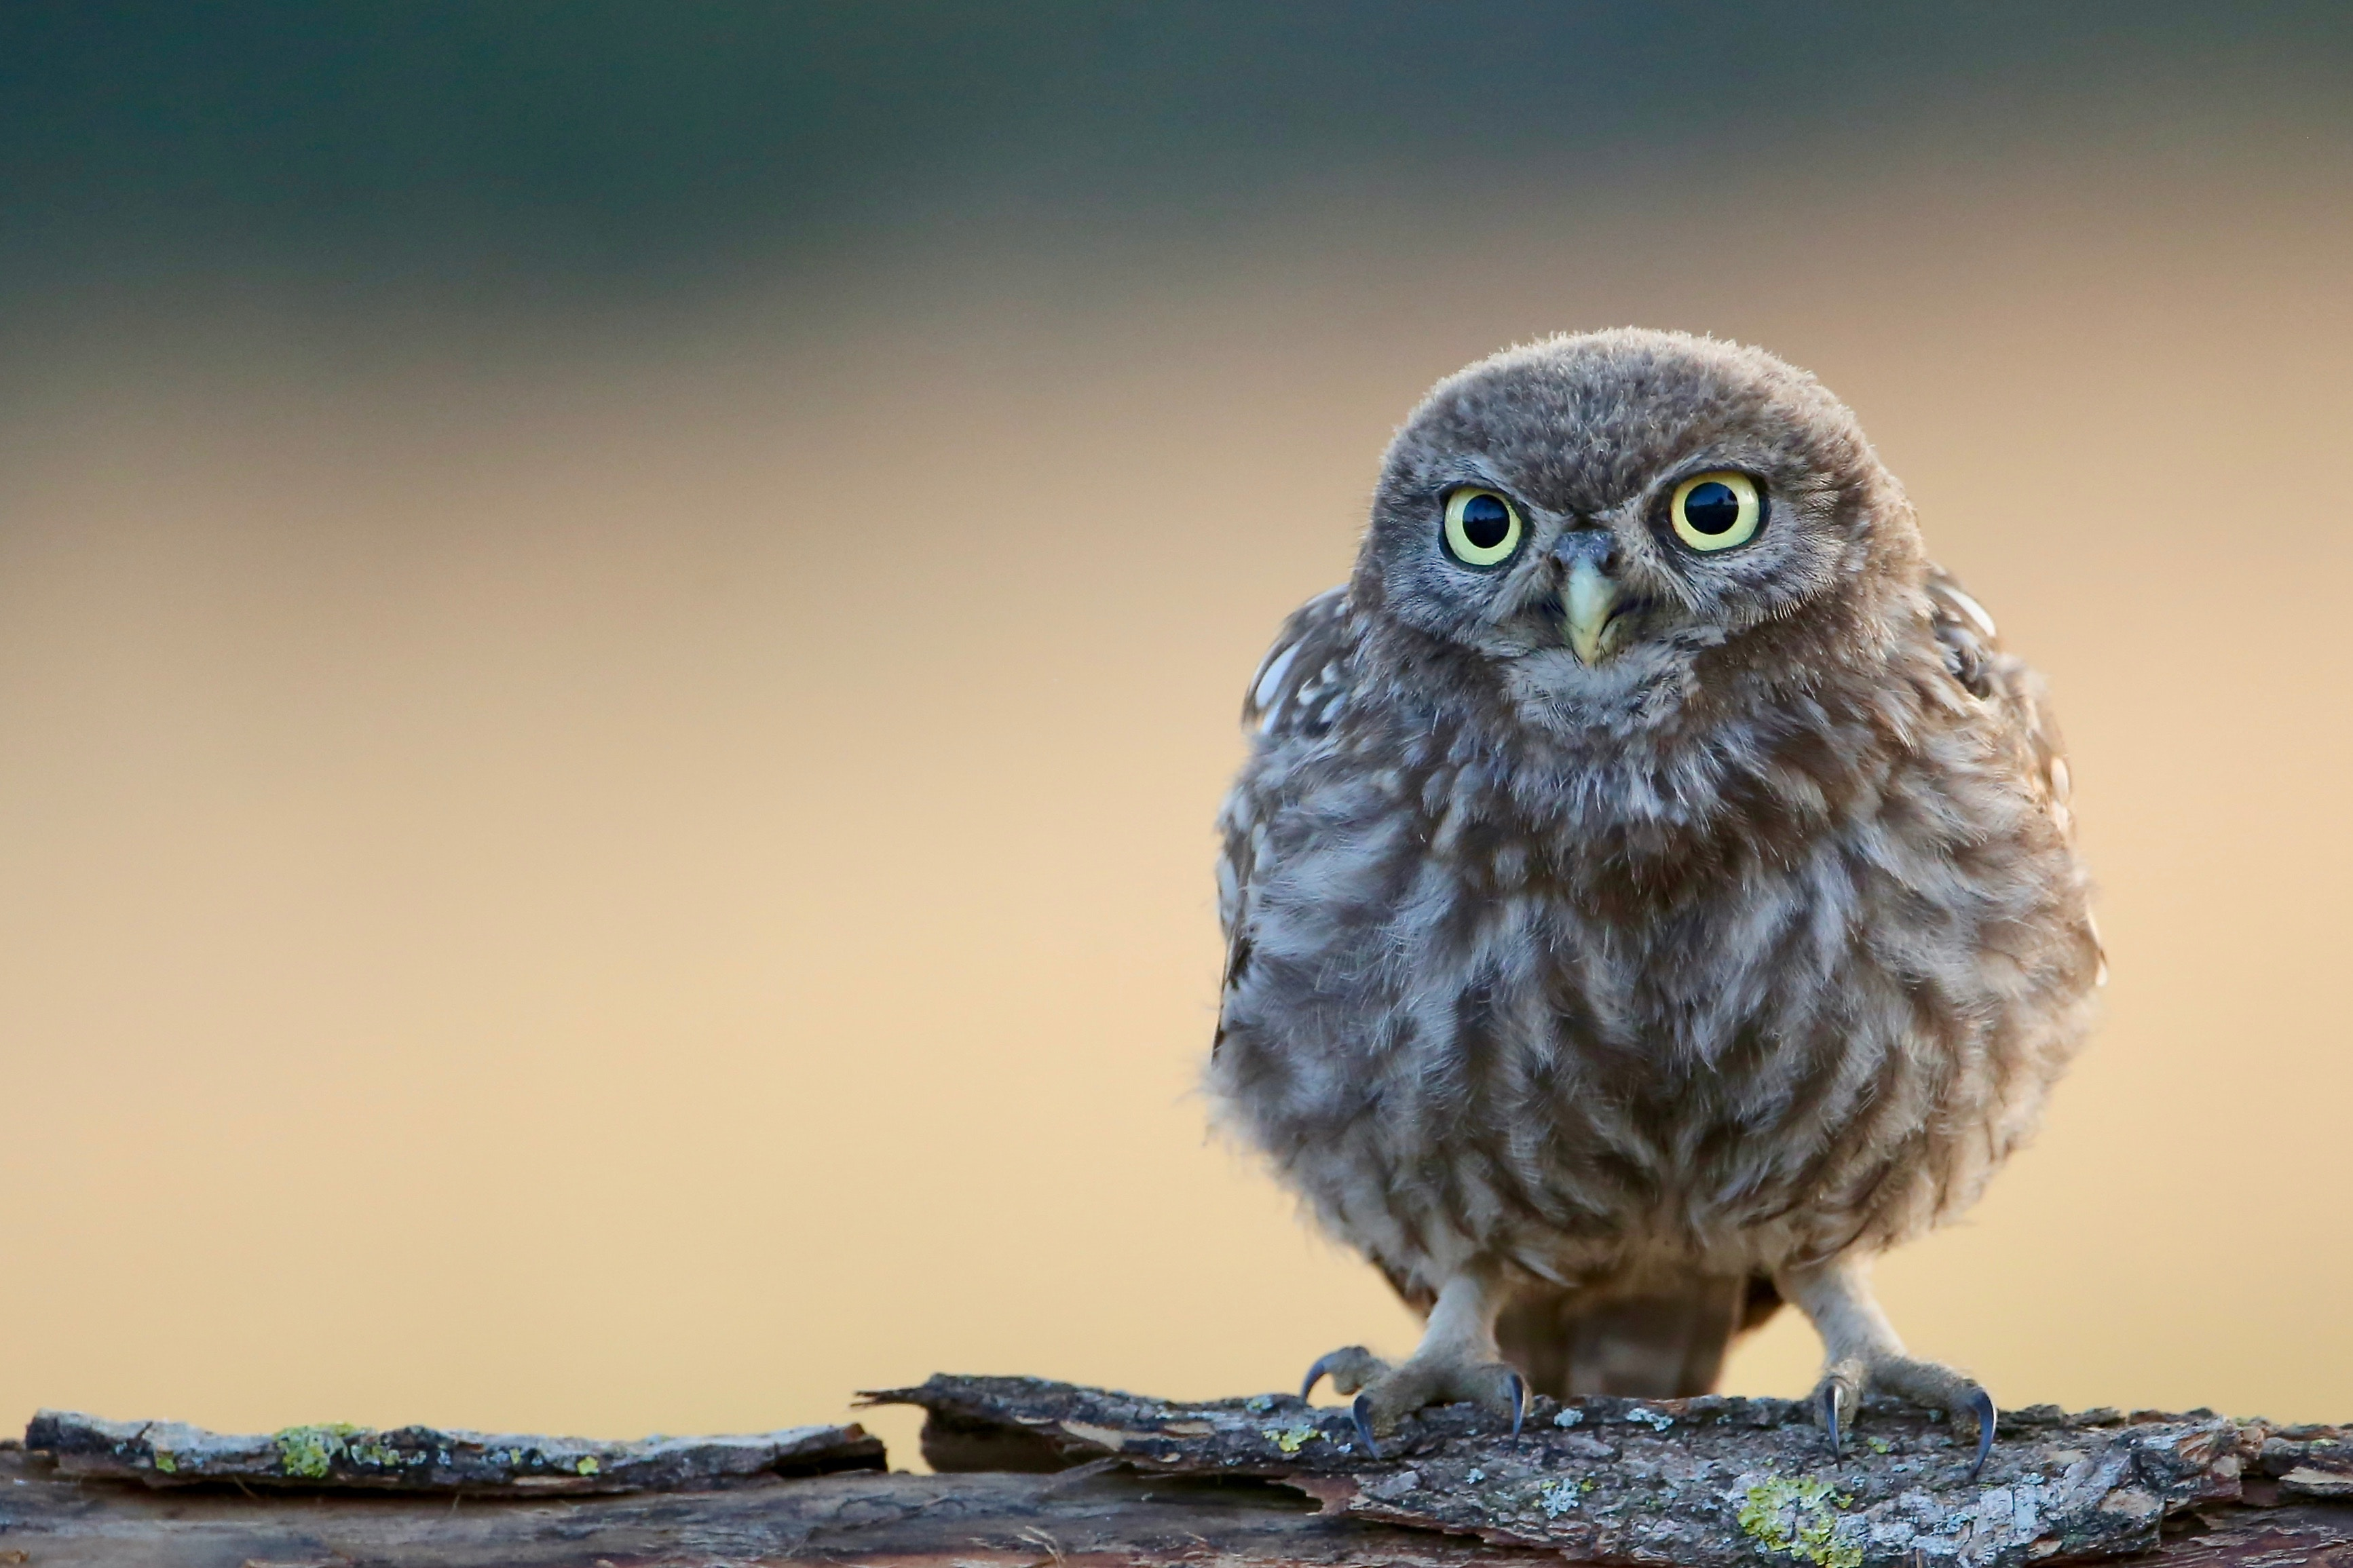 2048x1152 Little Cute Owl 4k 2048x1152 Resolution Hd 4k